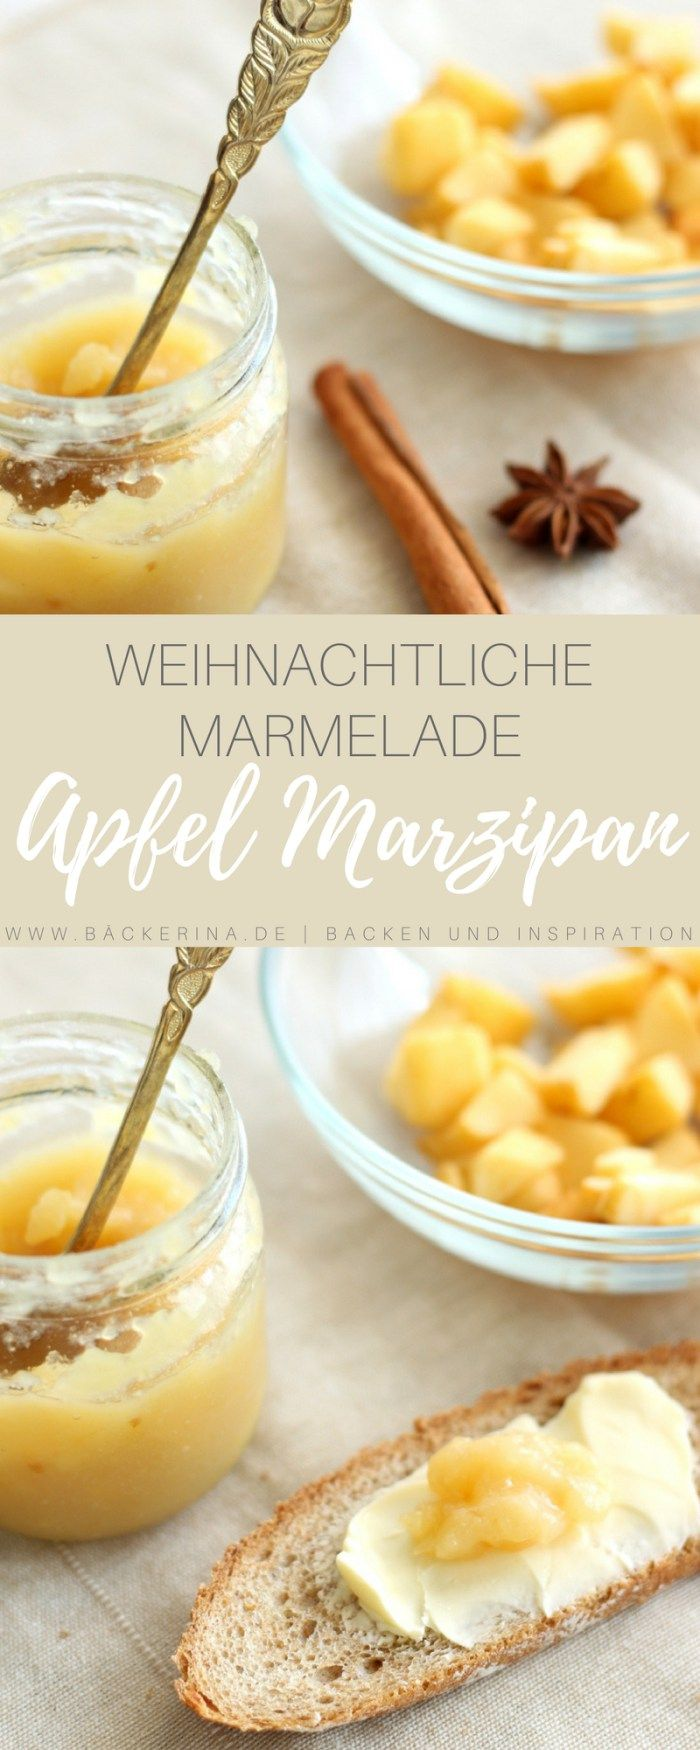 Winter apple jam with marzipan